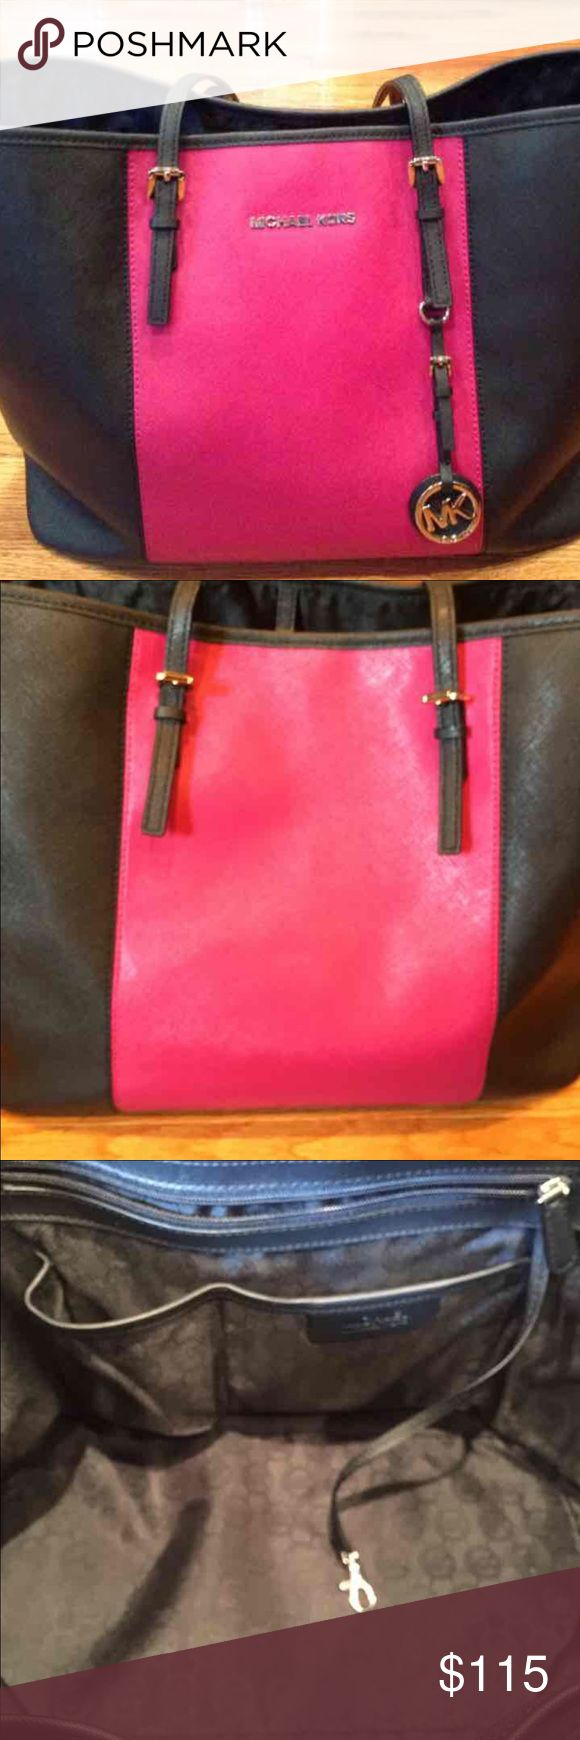 Michael Kors Jet Set Tote Michael Kors Jet Set Tote • Large • Black & Pink • Great Condition Michael Kors Bags Totes